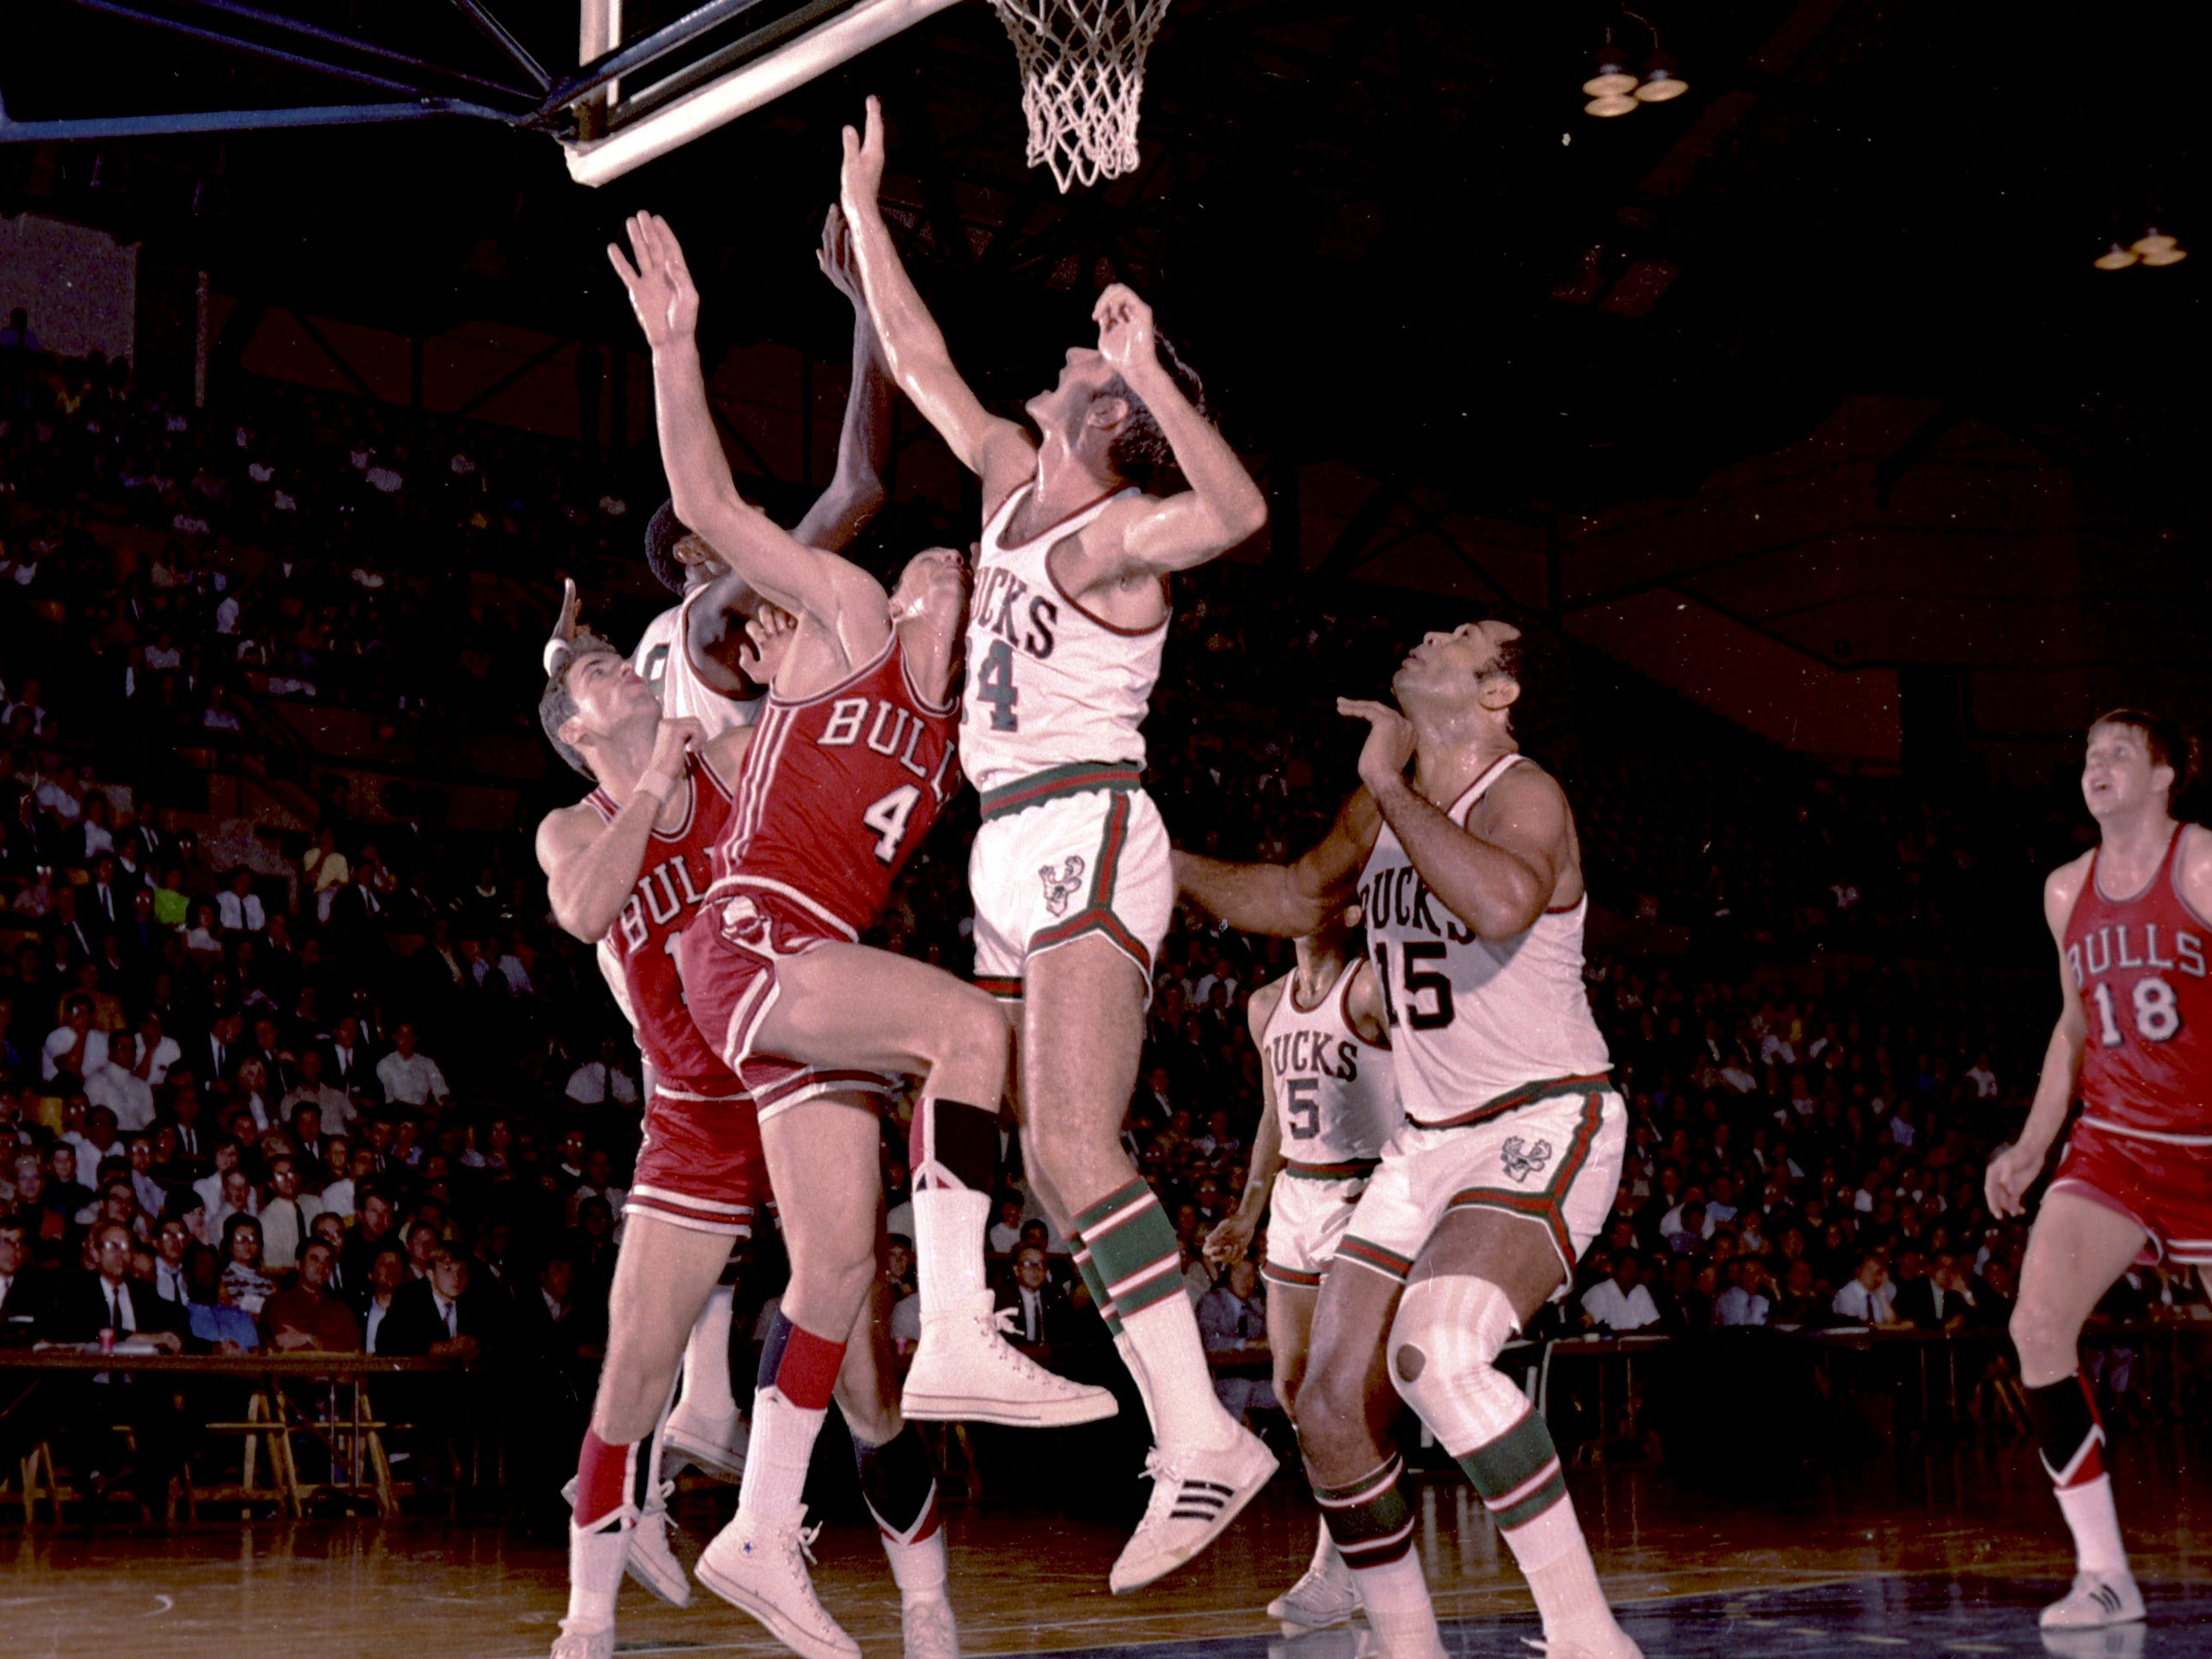 Milwaukee Bucks guard Jon McGlocklin goes up for a rebound during the Bucks' inaugural game in the NBA on Oct. 16, 1968, against the Chicago Bulls at the Milwaukee Arena. The Bucks lost, 89-84.